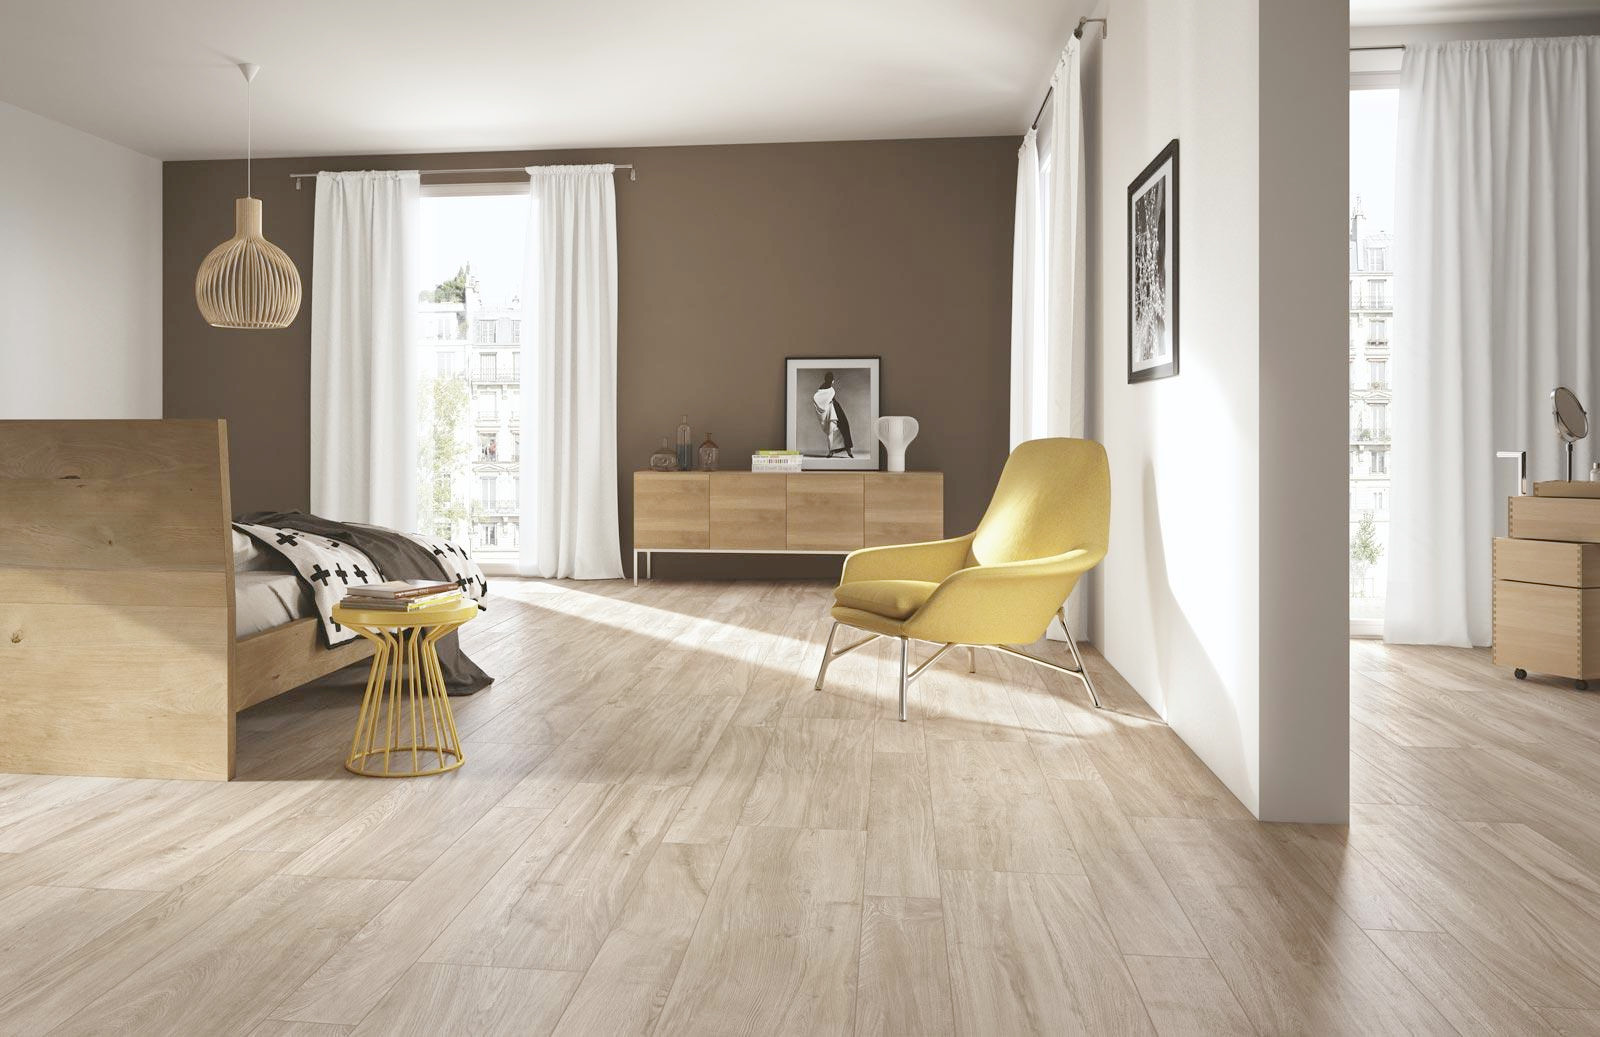 Ragno Woodliving Rovere Fumo